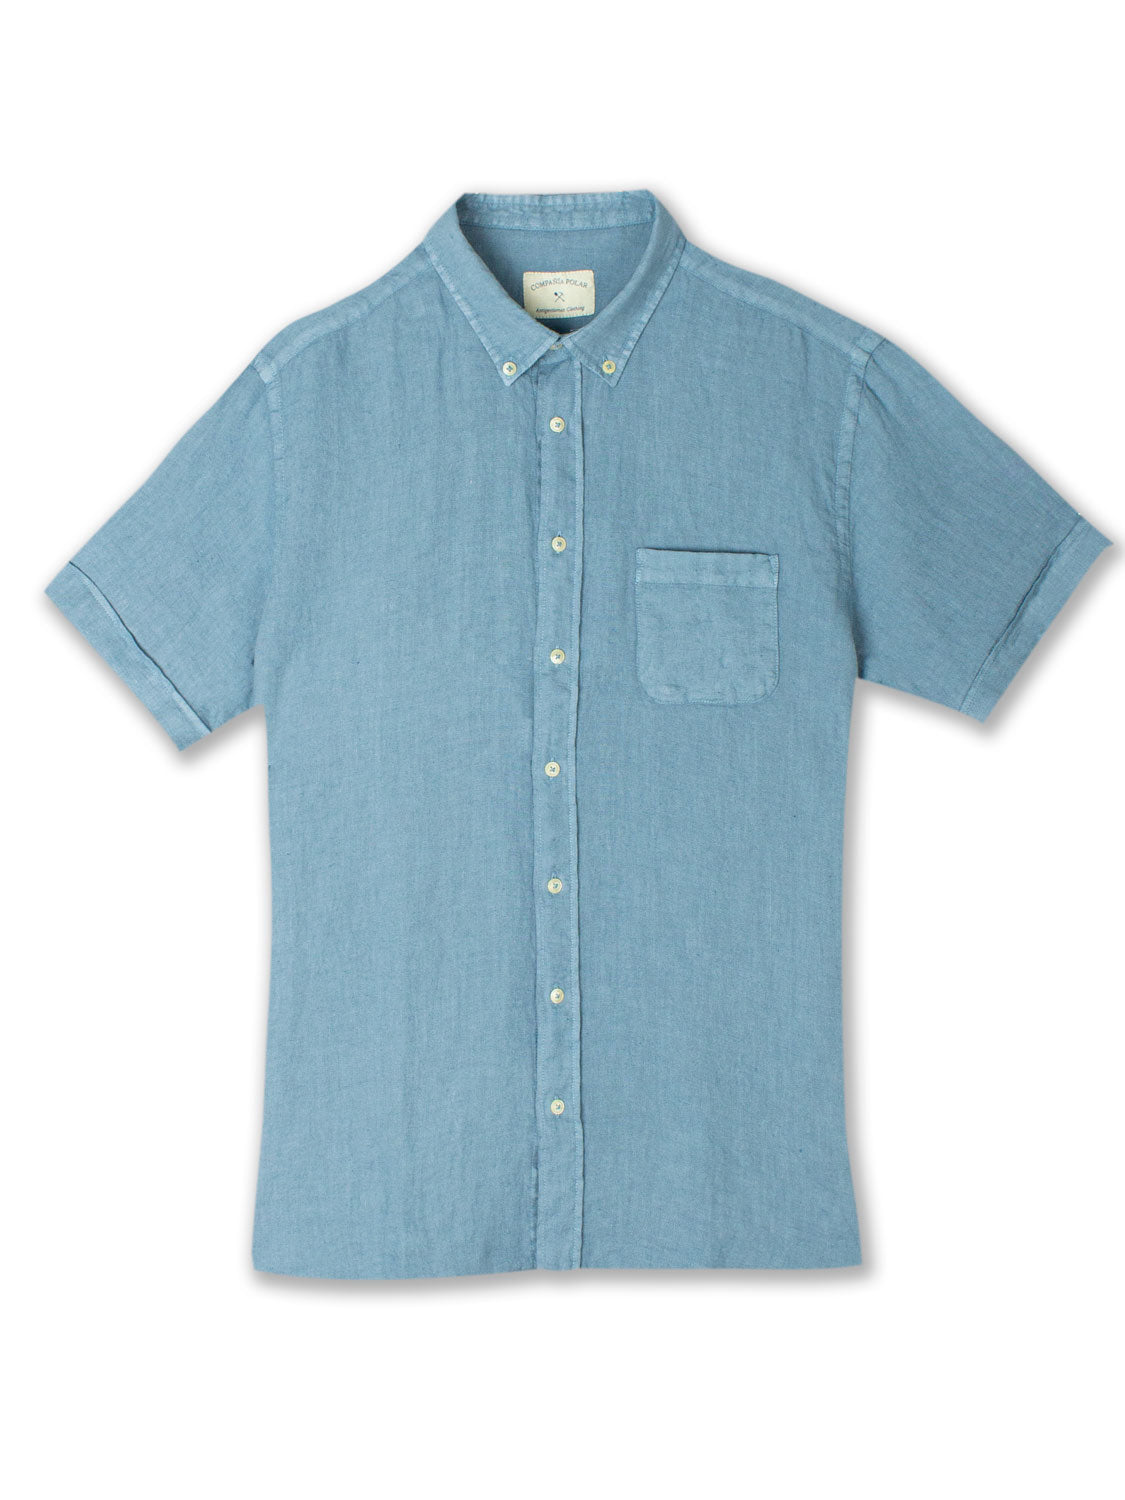 HANK SHIRT LINEN LIGHT BLUE